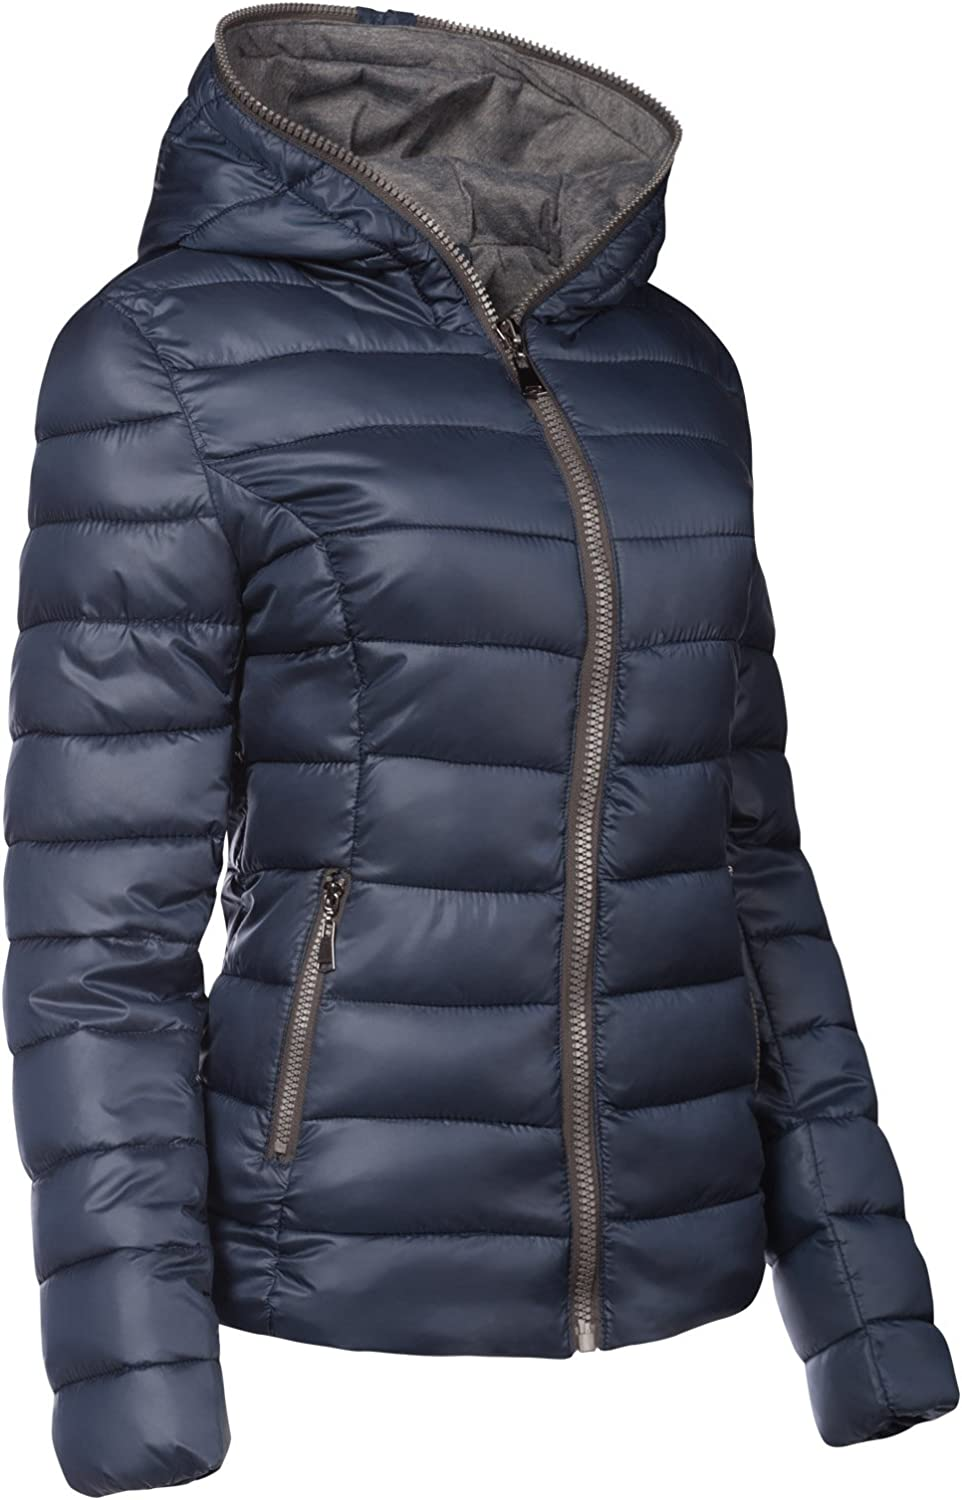 SWest Damen Winter Jacke GEF/ÜTTERT KURZ STEPP DAUNEN Optik Kapuze Skijacke WARM New